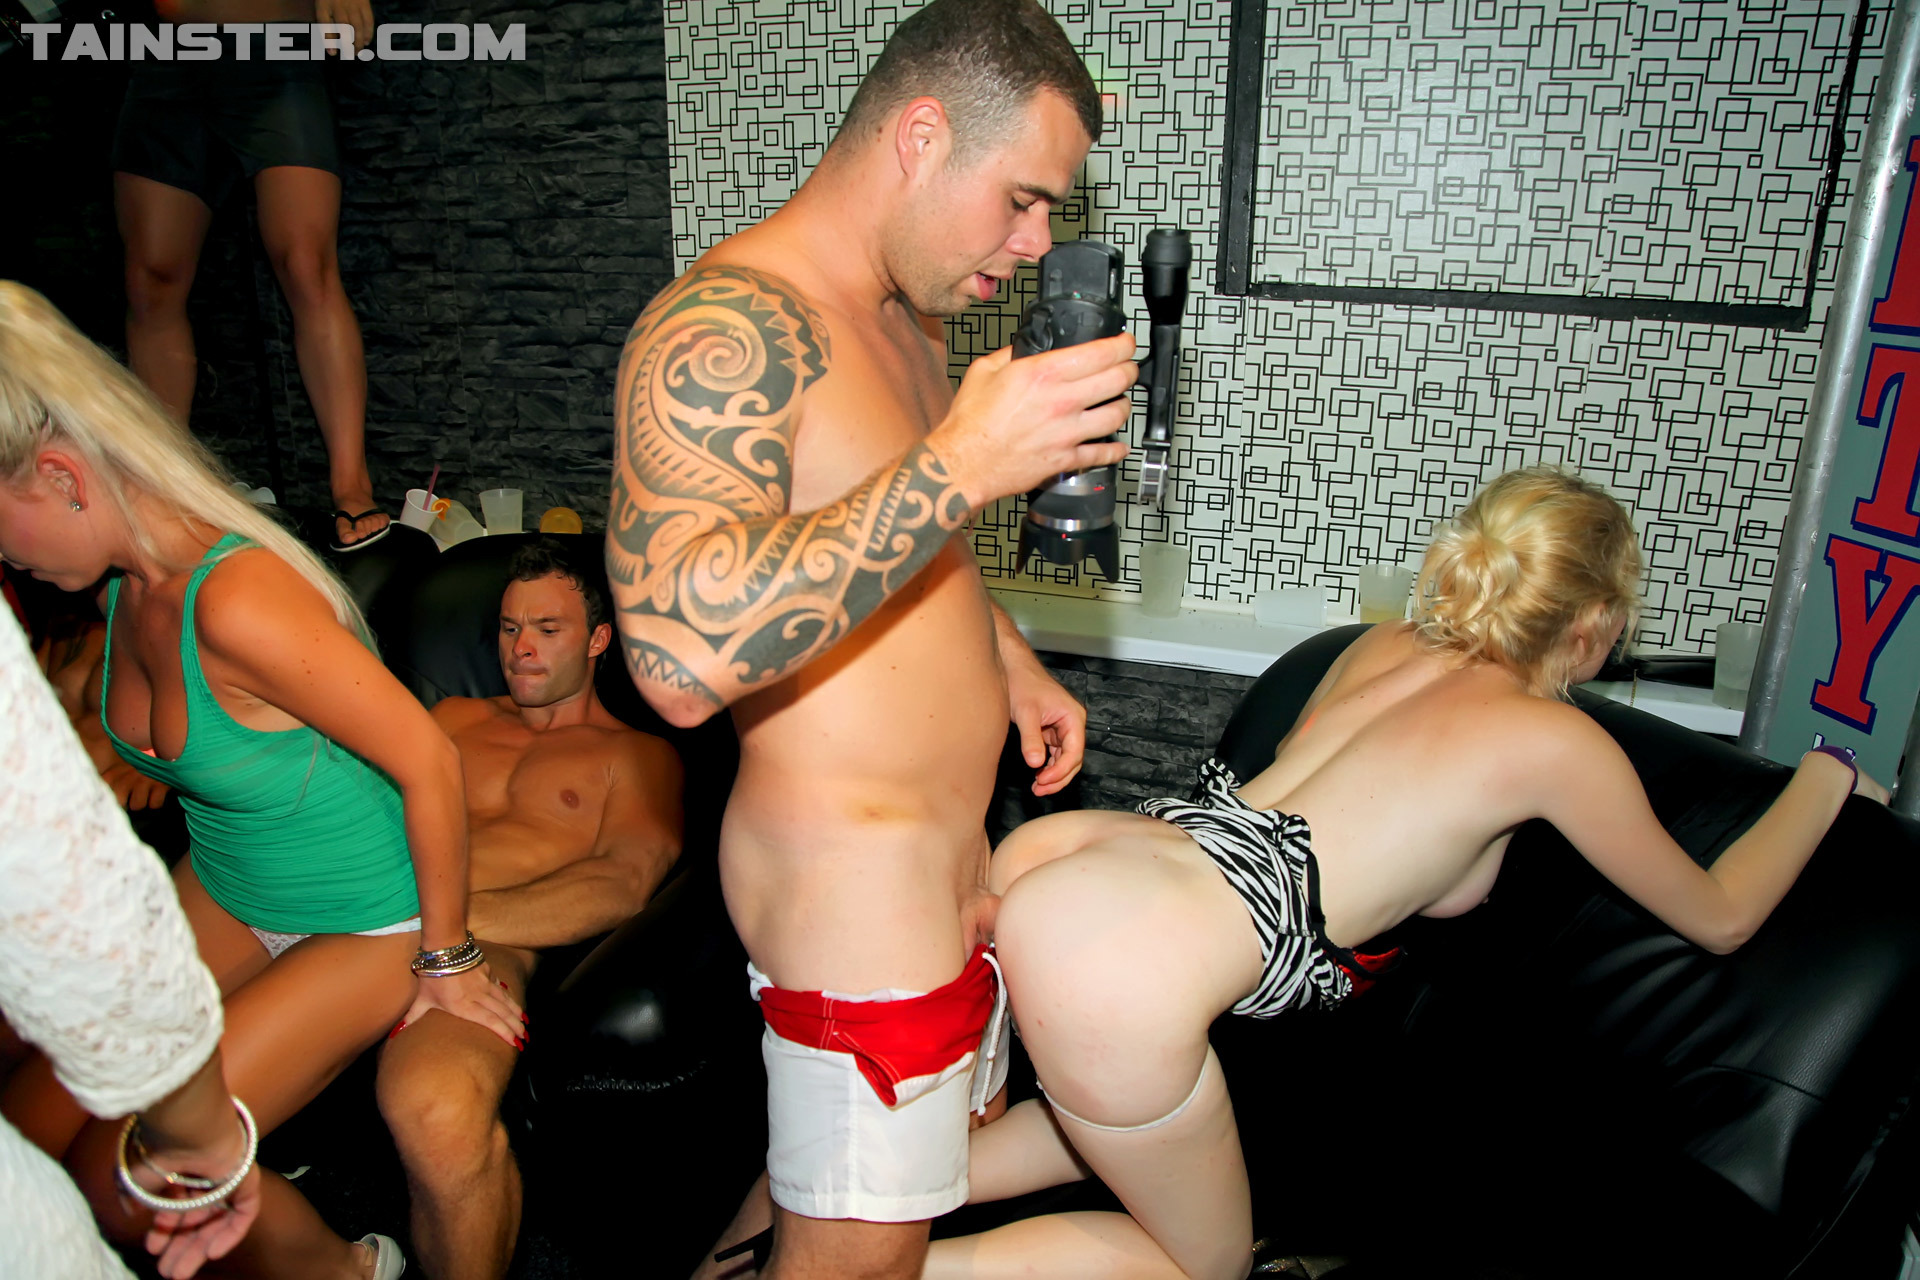 similar situation. erotic hotel stuttgart swinger videos share your opinion. excellent